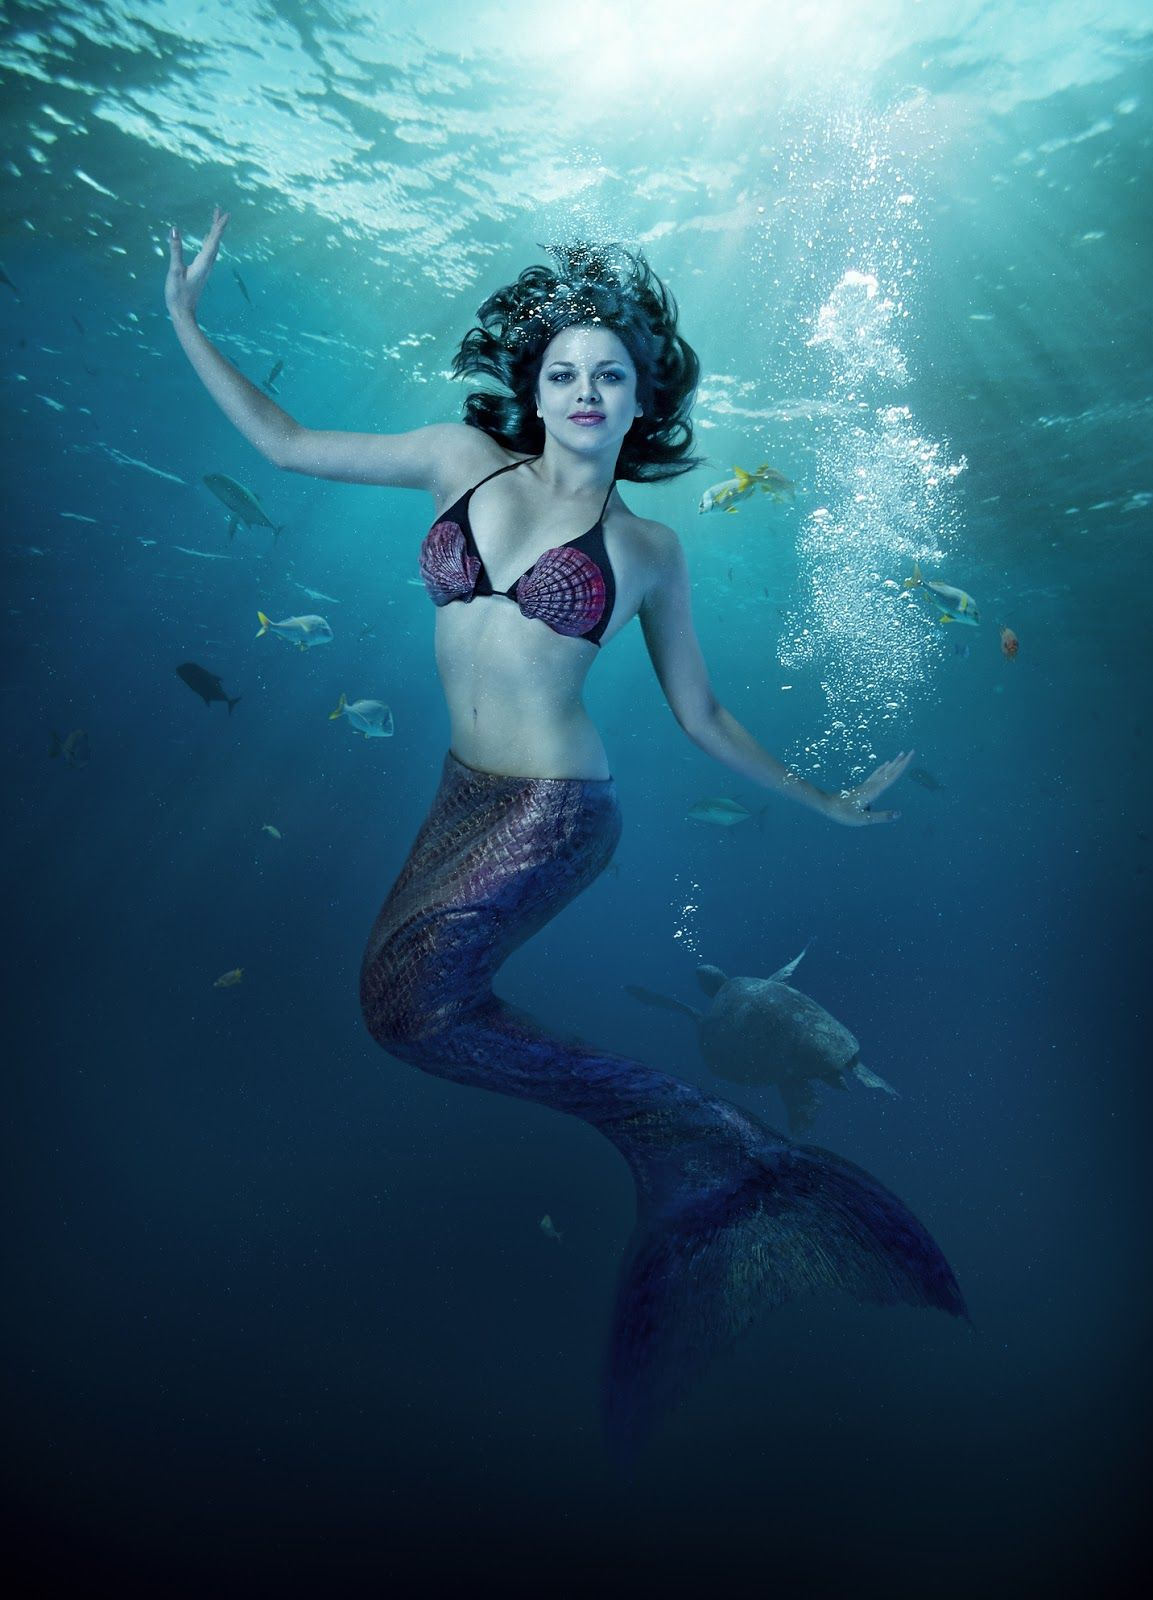 Mermaids Live Show At The Ripley S Aquarium In Myrtle Beach Attractions